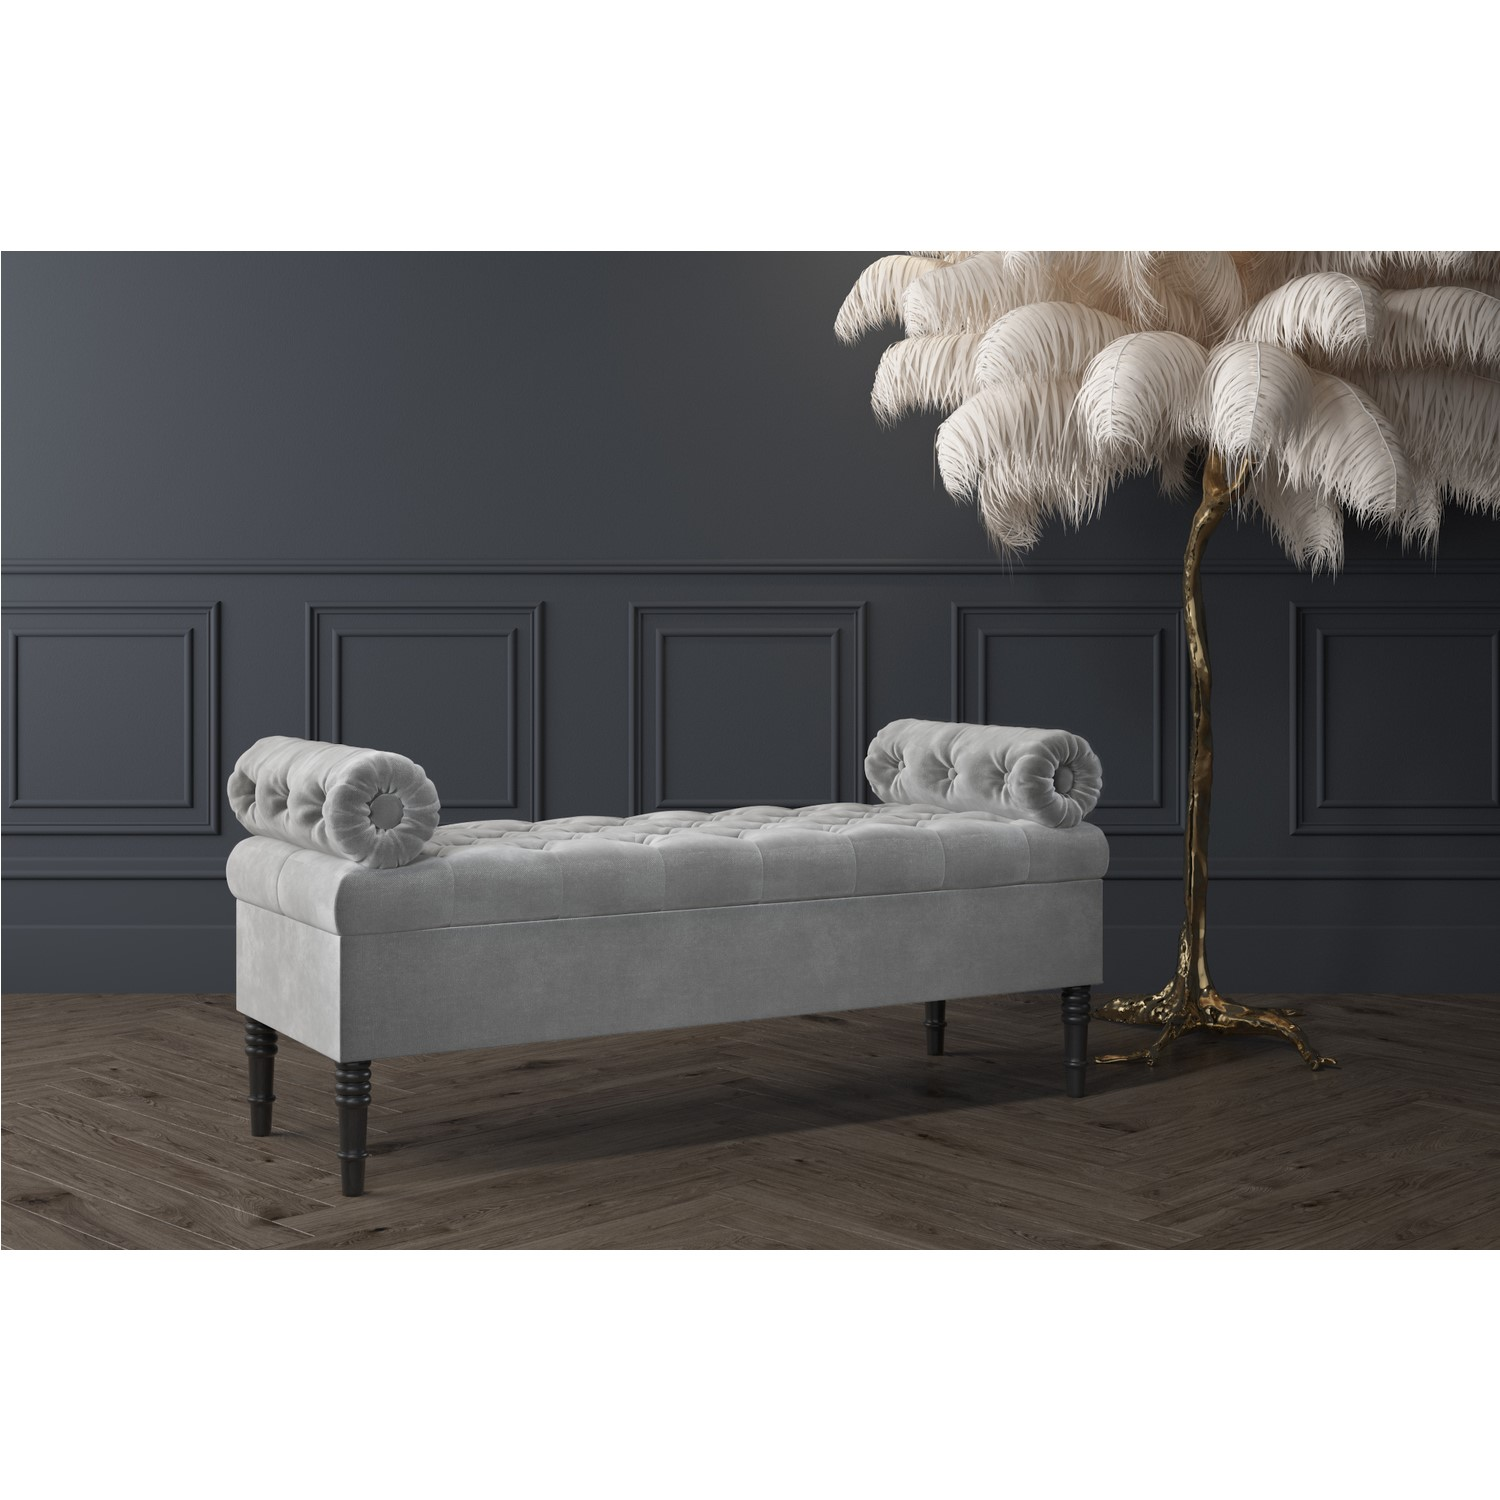 Picture of: Safina Ottoman Storage Bench In Grey Velvet With Bolster Cushions Furniture123